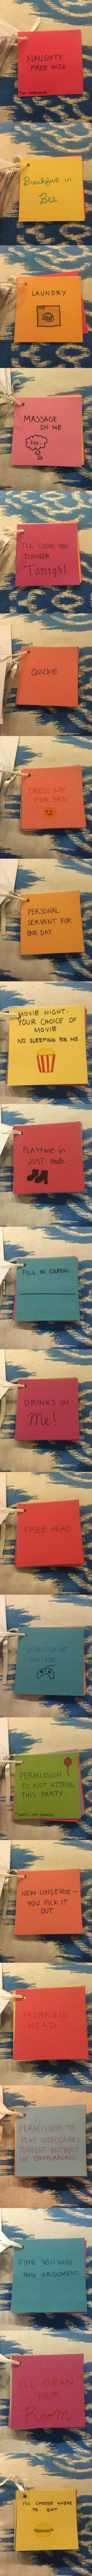 This Guy's Girlfriend Made Him Coupons For Their Anniversary